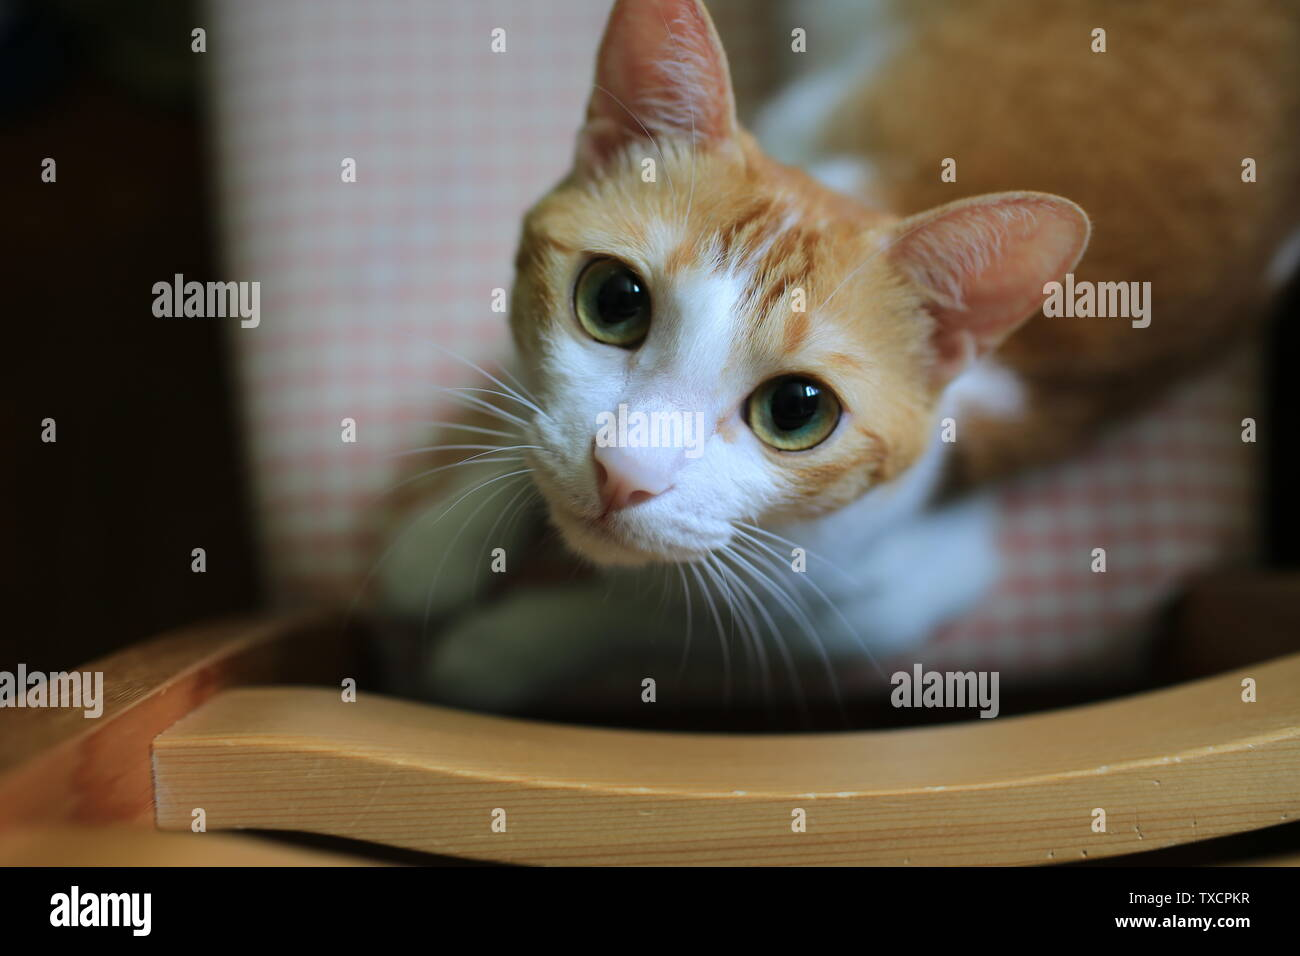 domestic ginger cat - Stock Image